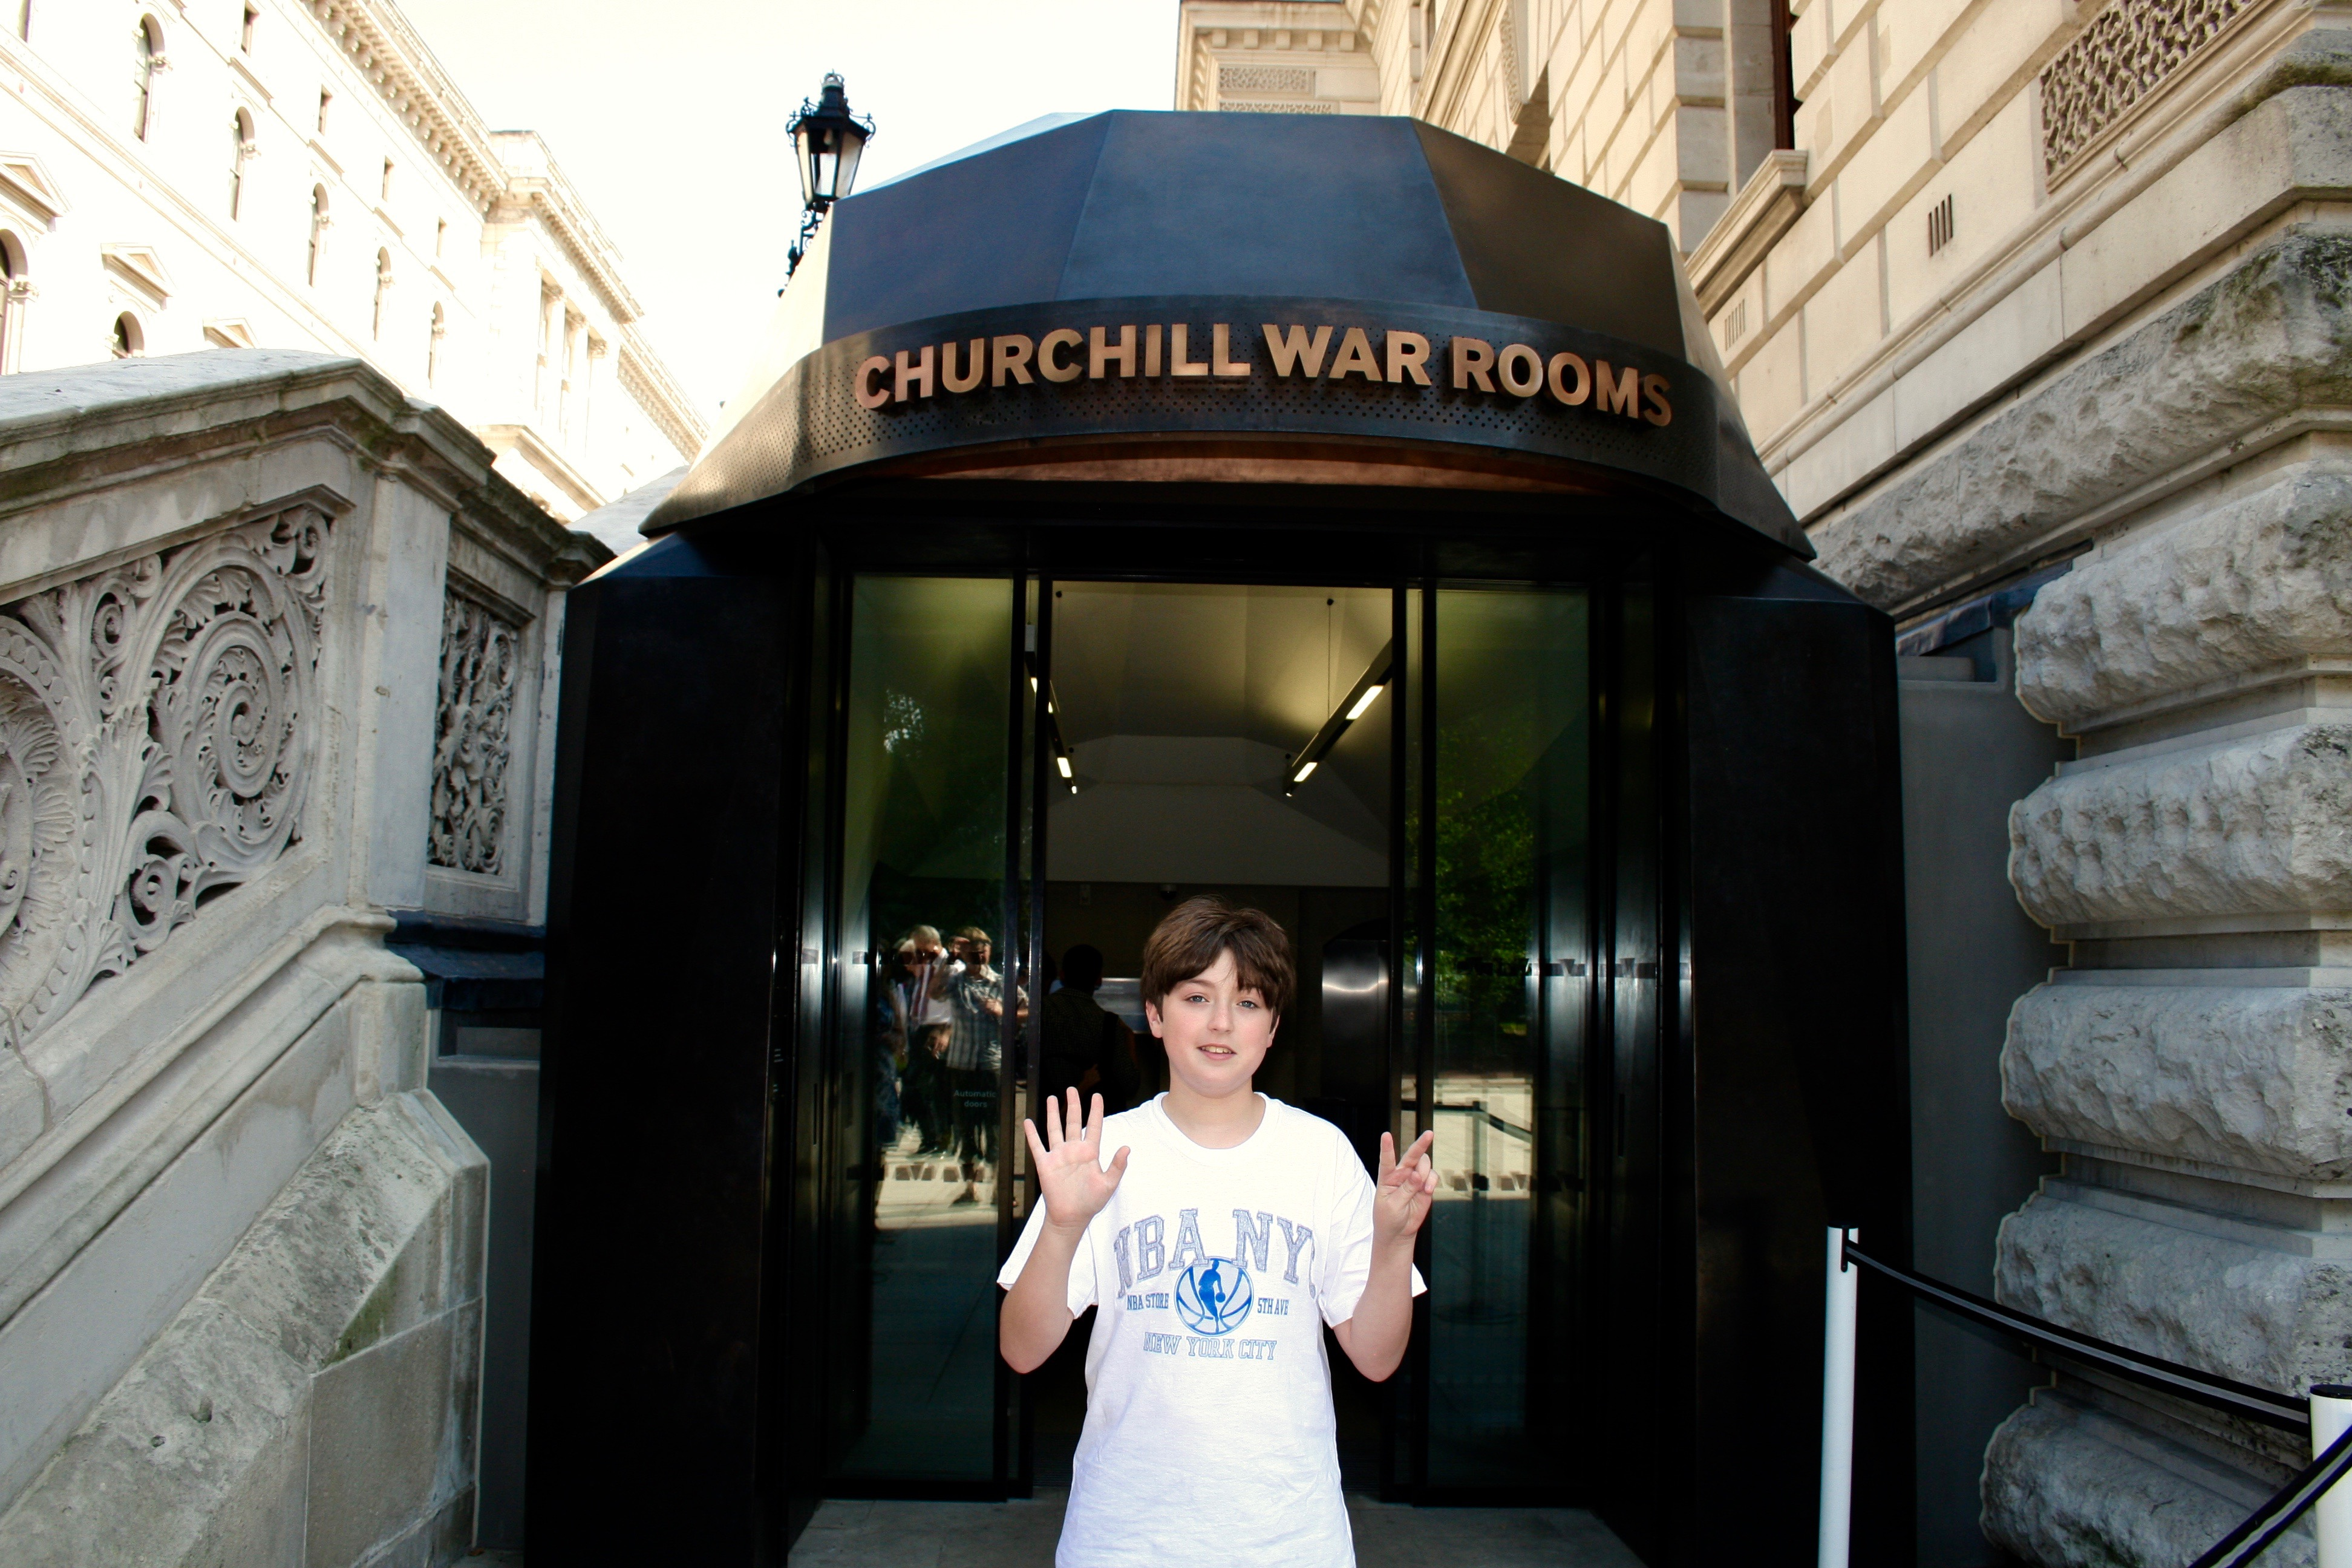 Astounding London Churchill Museum And Cabinet War Rooms Reviews Download Free Architecture Designs Embacsunscenecom